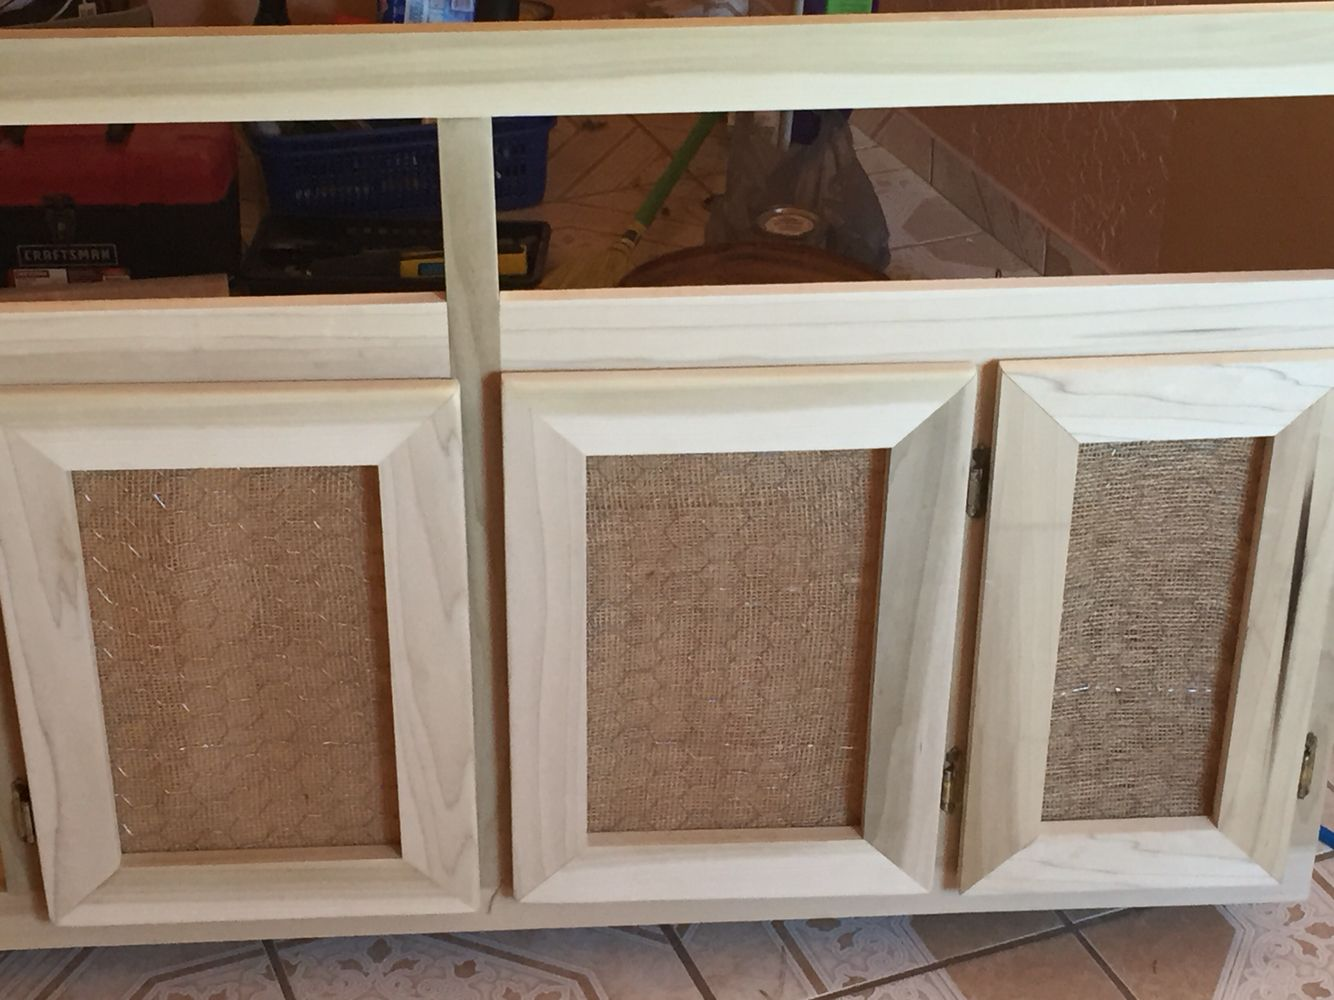 Diy cabinet door used burlap and chicken wire for a more rustic ...